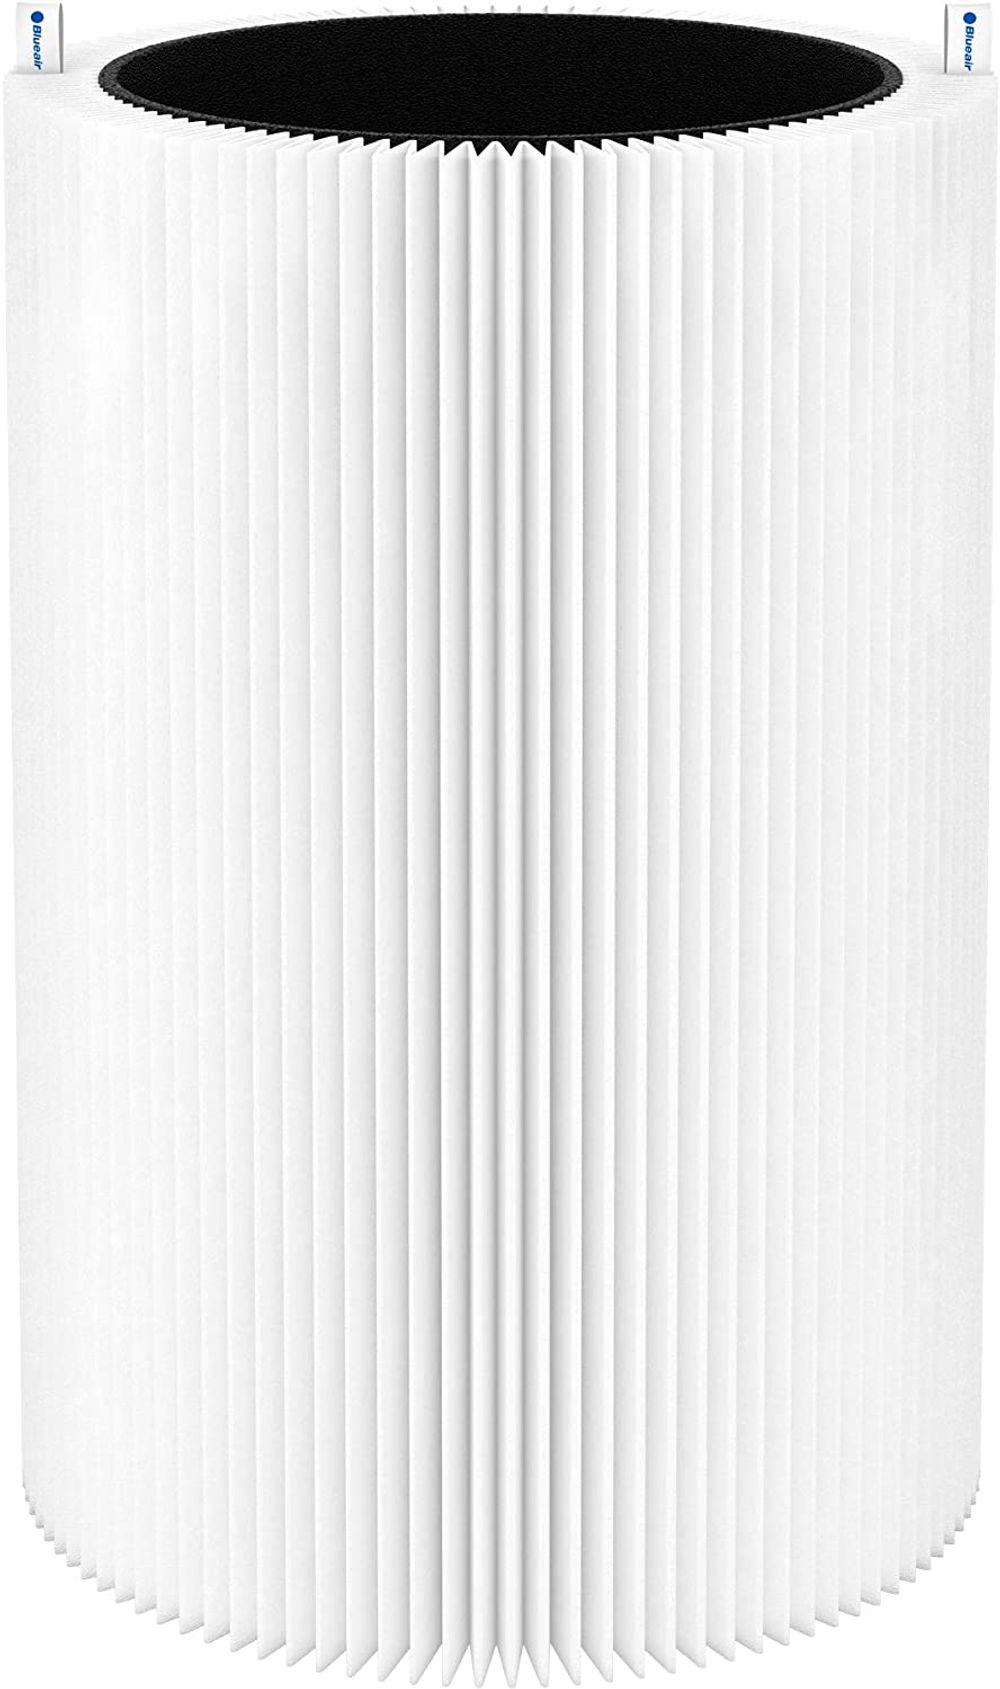 Blueair Blue Pure 411 Genuine Replacement Filter, Particle and Activated Carbon, Fits Blue Pure 411, 411+ & MINI Air Purifiers, Model Number: F411PACF102174